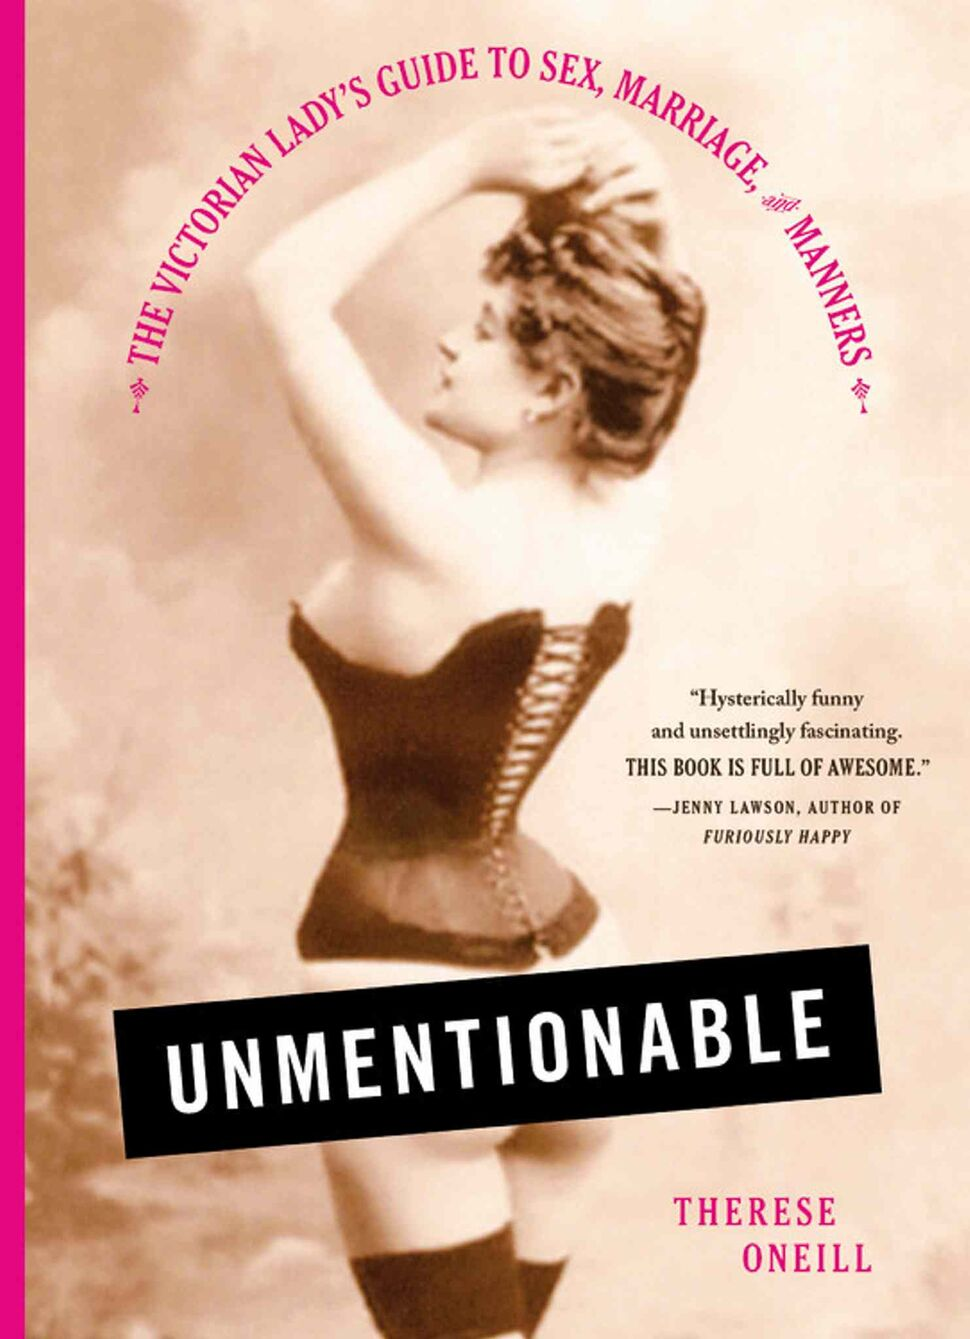 <h3>Unmentionable: The Victorian Lady's Guide to Sex, Marriage and Manners</h3> <br/> By Therese Oneill <br/> <strong>American writer Therese Oneill uses her debut book to cheerfully and humorously expose the ugly side of Victorian women's lives. Like Ian Mortimer in his 2008 history book The Time Traveller's Guide to Medieval England, Oneill treats her reader as a visitor to another time period, focusing on details modern humans may overlook or feel too embarrassed to question.</strong> <br/> — Kathryne Cardwell